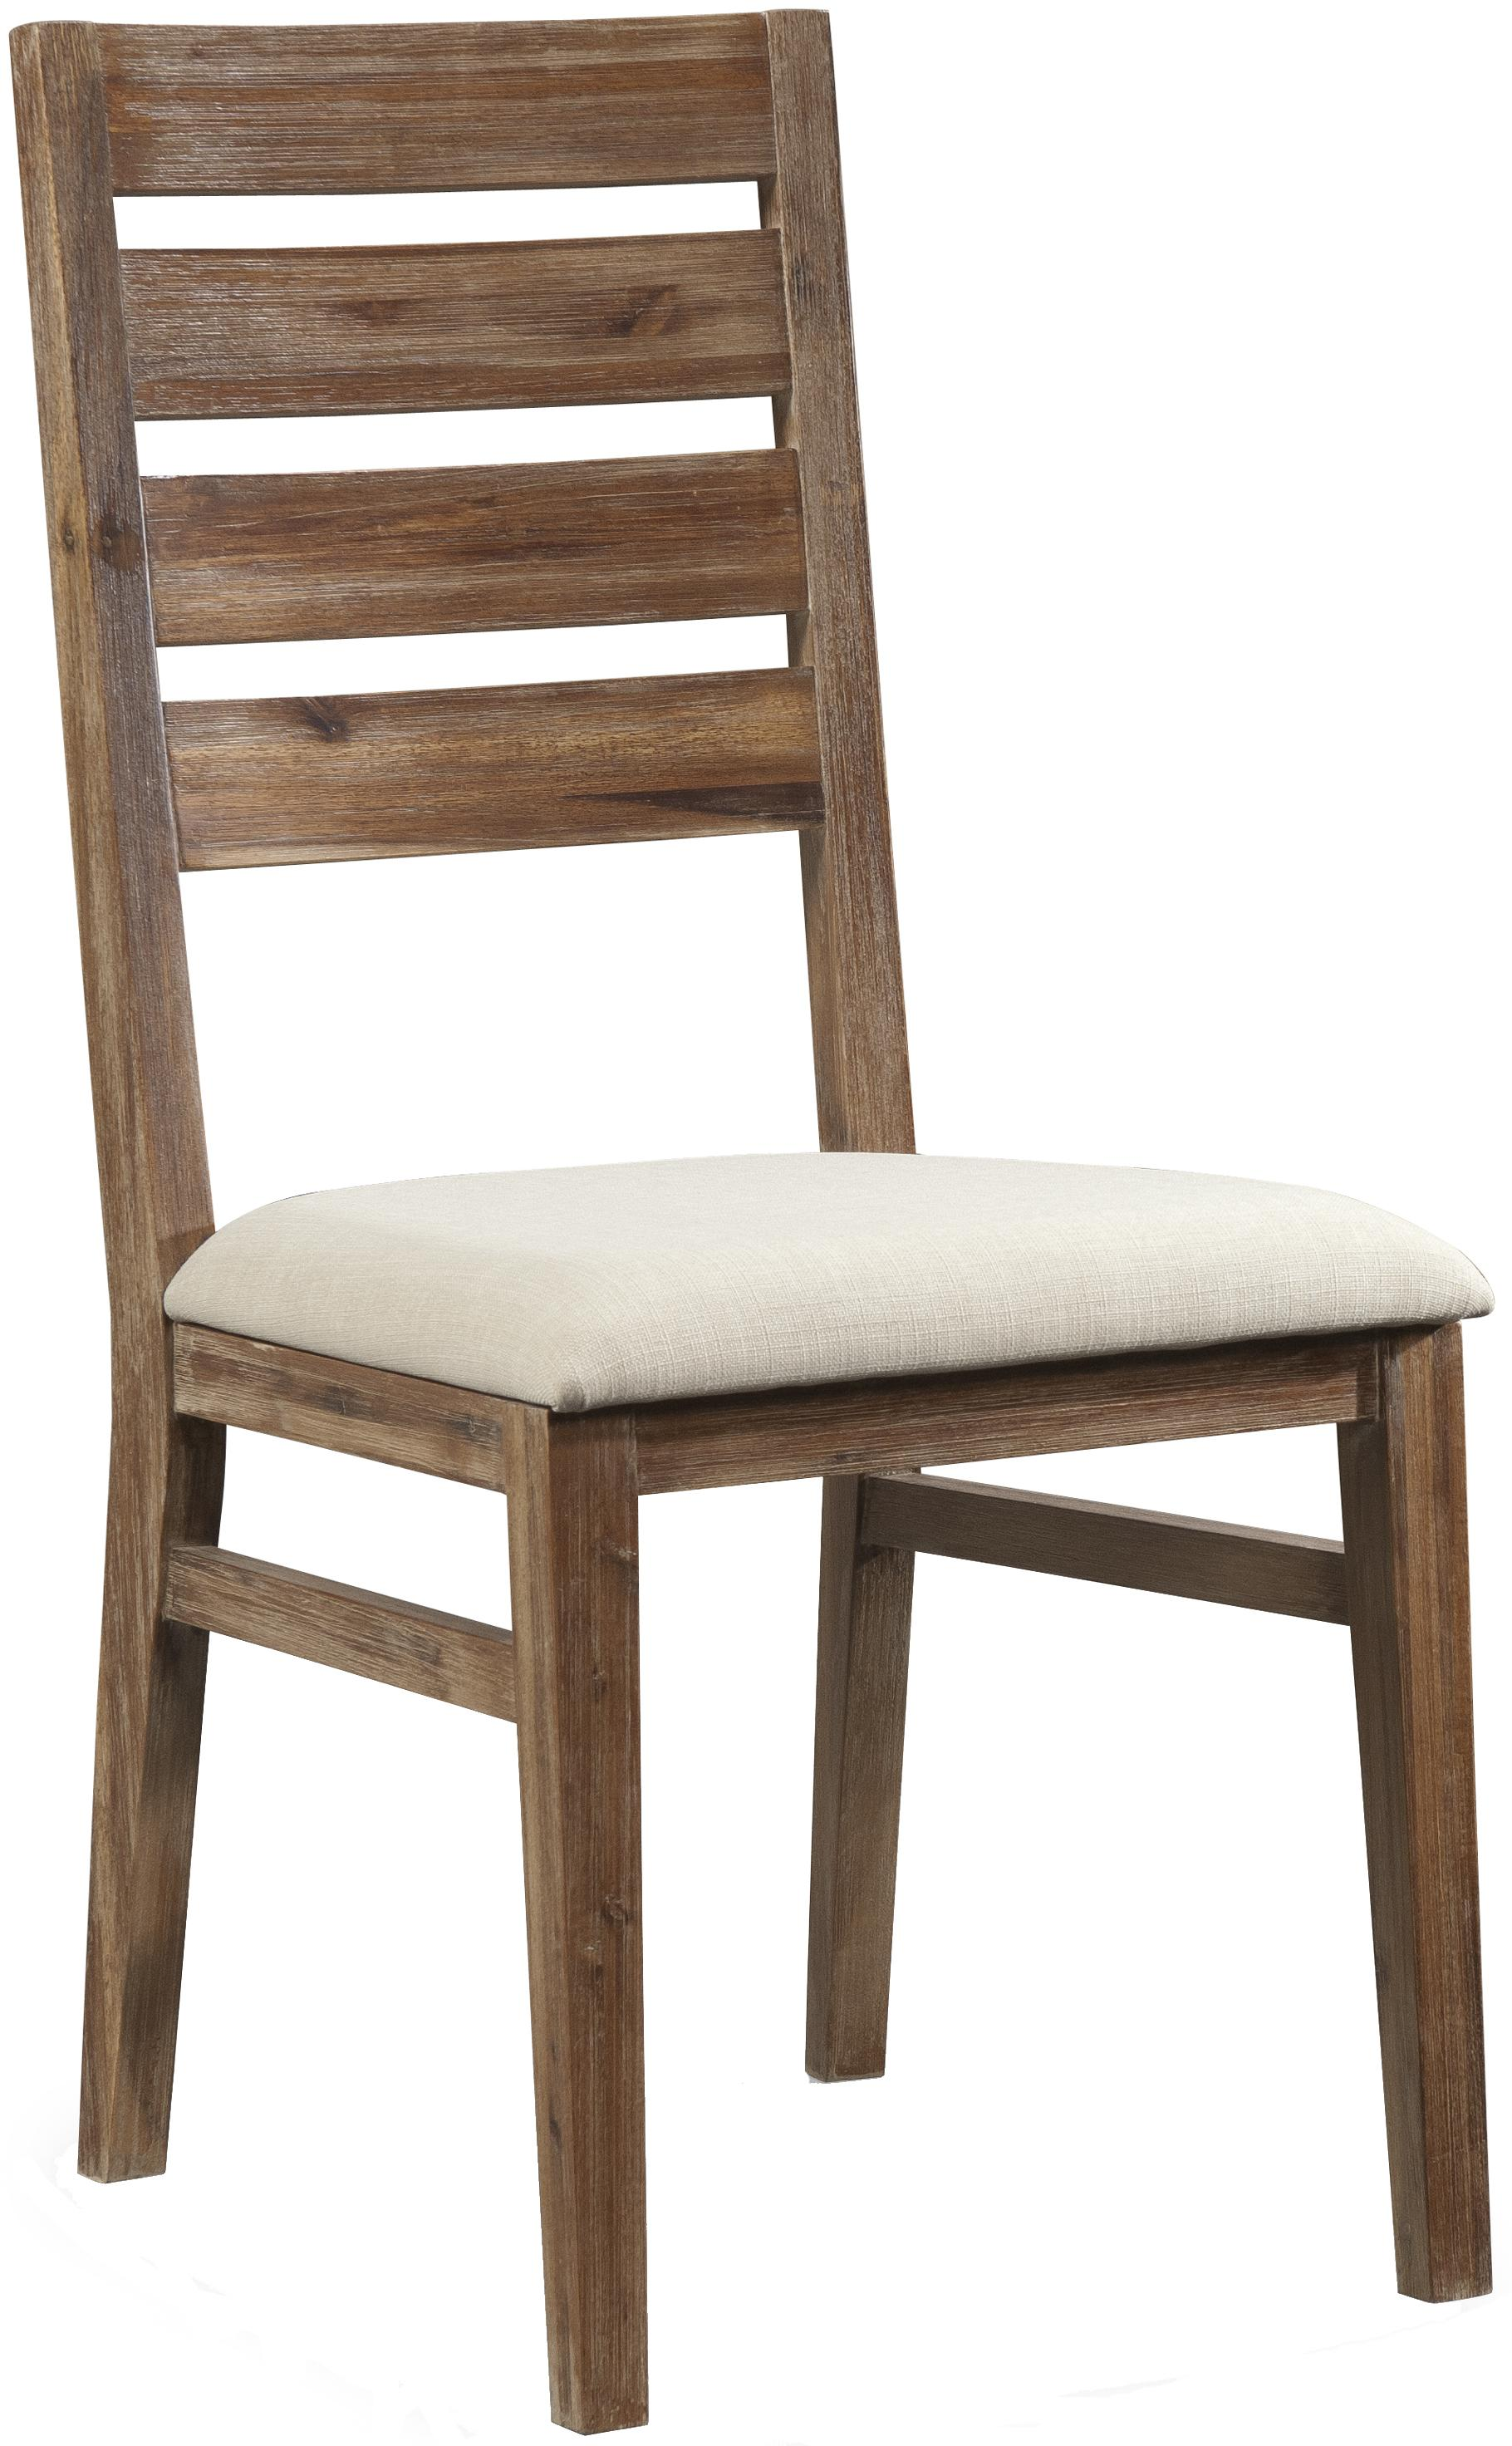 Cresent Fine Furniture Waverly Side Chair - Item Number: 5558